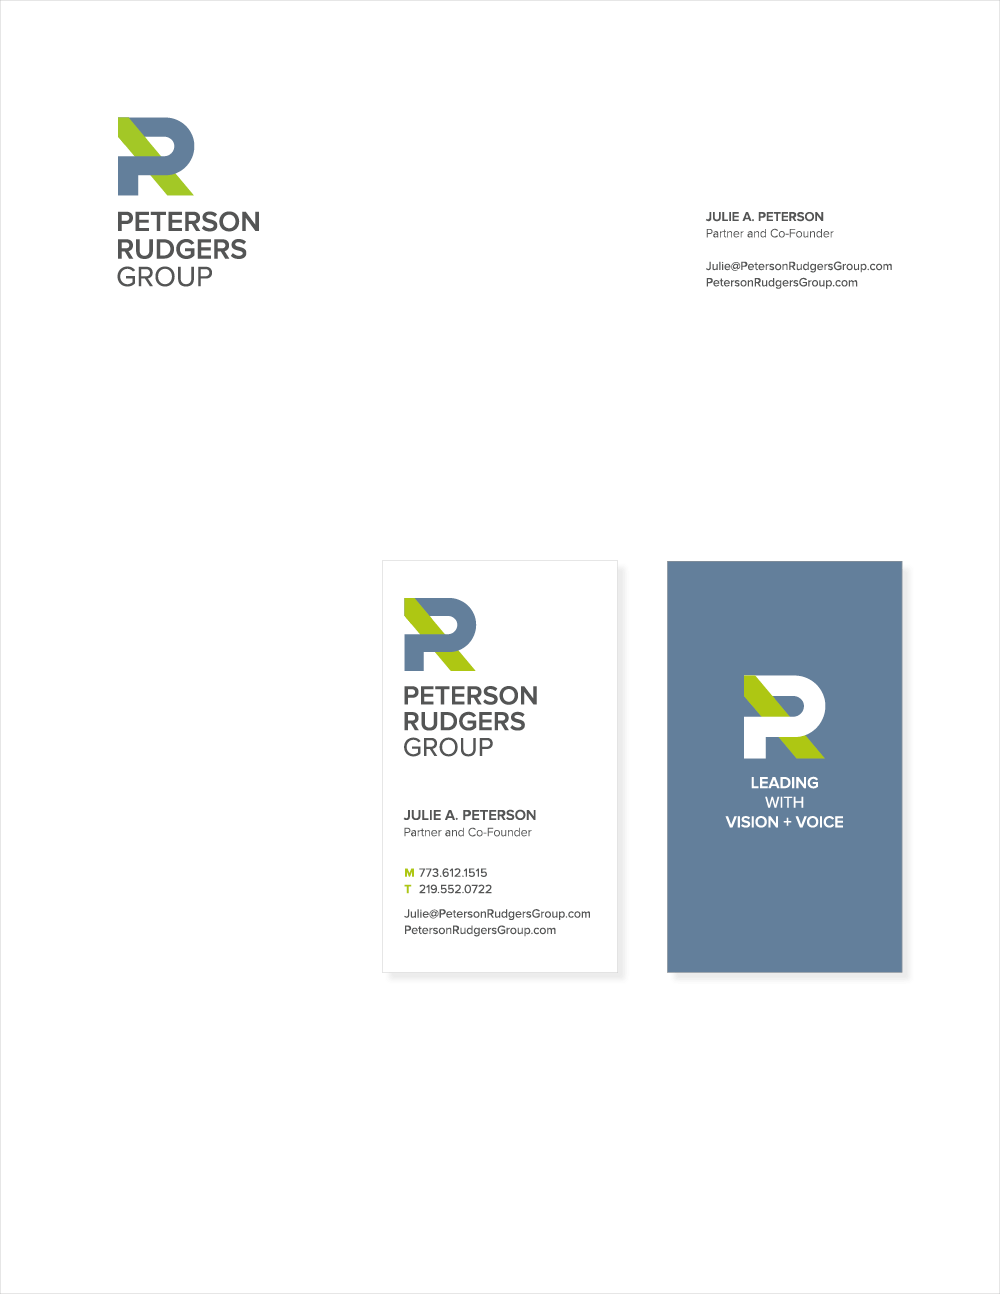 letterhead business card